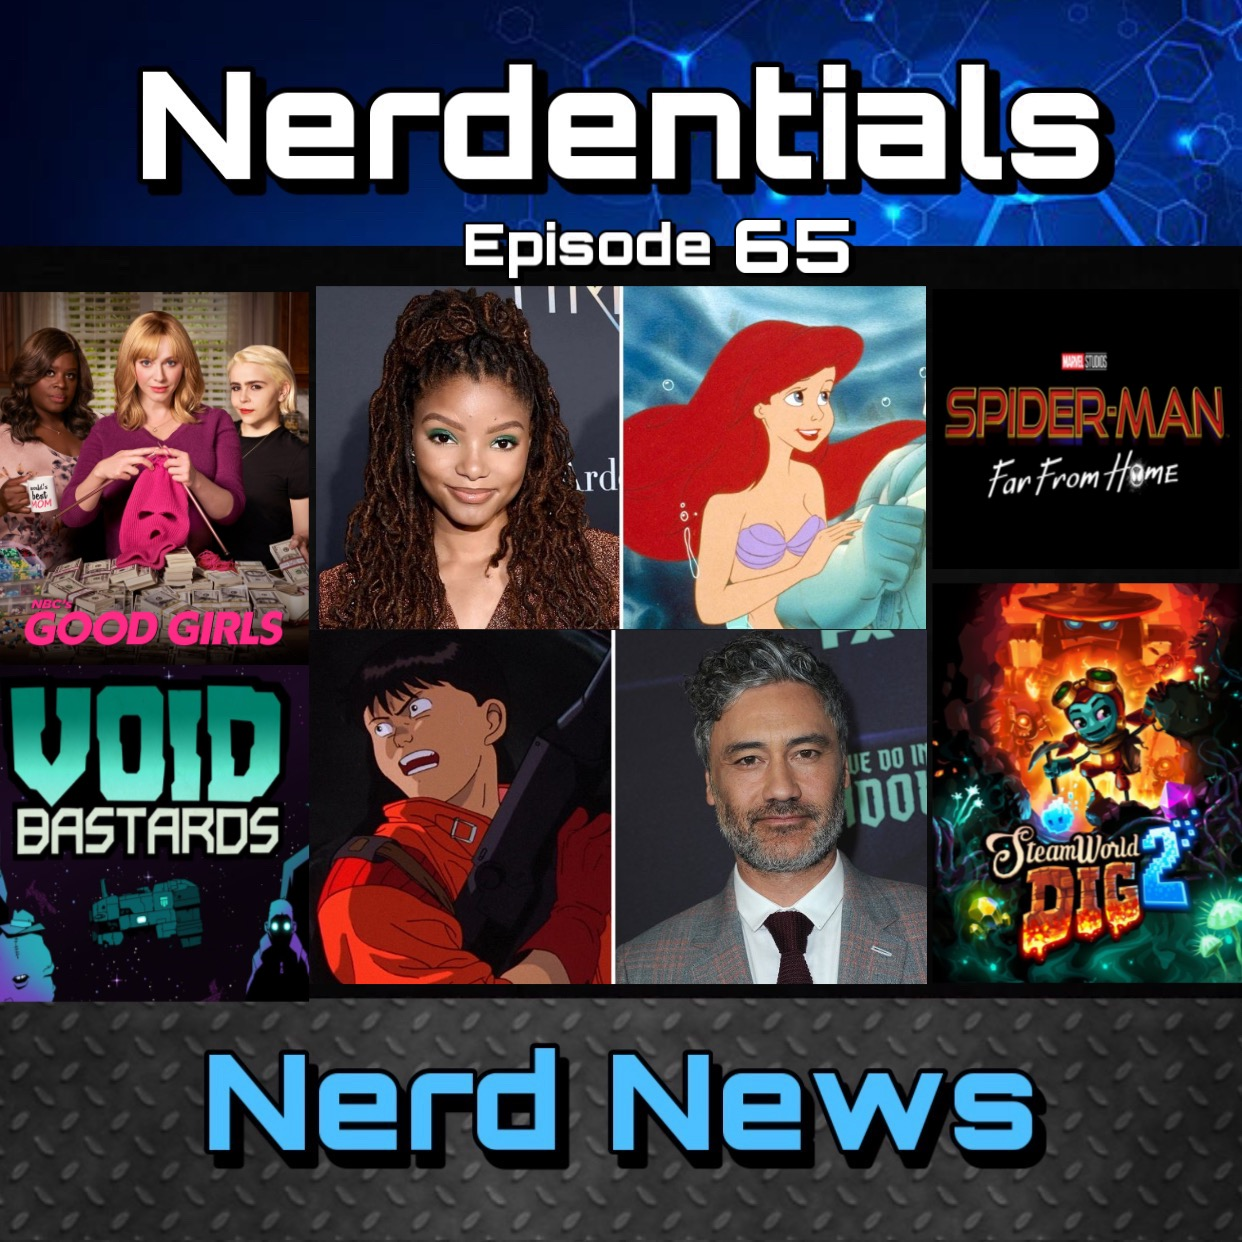 - Welcome to Nerdentials! Your weekly dose of the nerdy essentials. Covering Film, TV, Video Games and Comics.This week your Nerd hosts, Joe and Lynn kick off things with some hot nerd news! We go over our feelings on the casting for Disney's Live action adaptation.We cover Spider-Man: Far From Home's record box office numbers. Lynn gives some scoops on the new Bill and Ted film and topping Movie matters off, we discuss Taika Waititi's pursuit for an all Japanese Cast for the Akira Live action film.In TV Talk Joe reviews Good Girls and...thats about it.Then the boys finish off with Gaming Bits and review a few titles, like, Steamworld Dig 2, Detroit Become Human and Void Bastards.